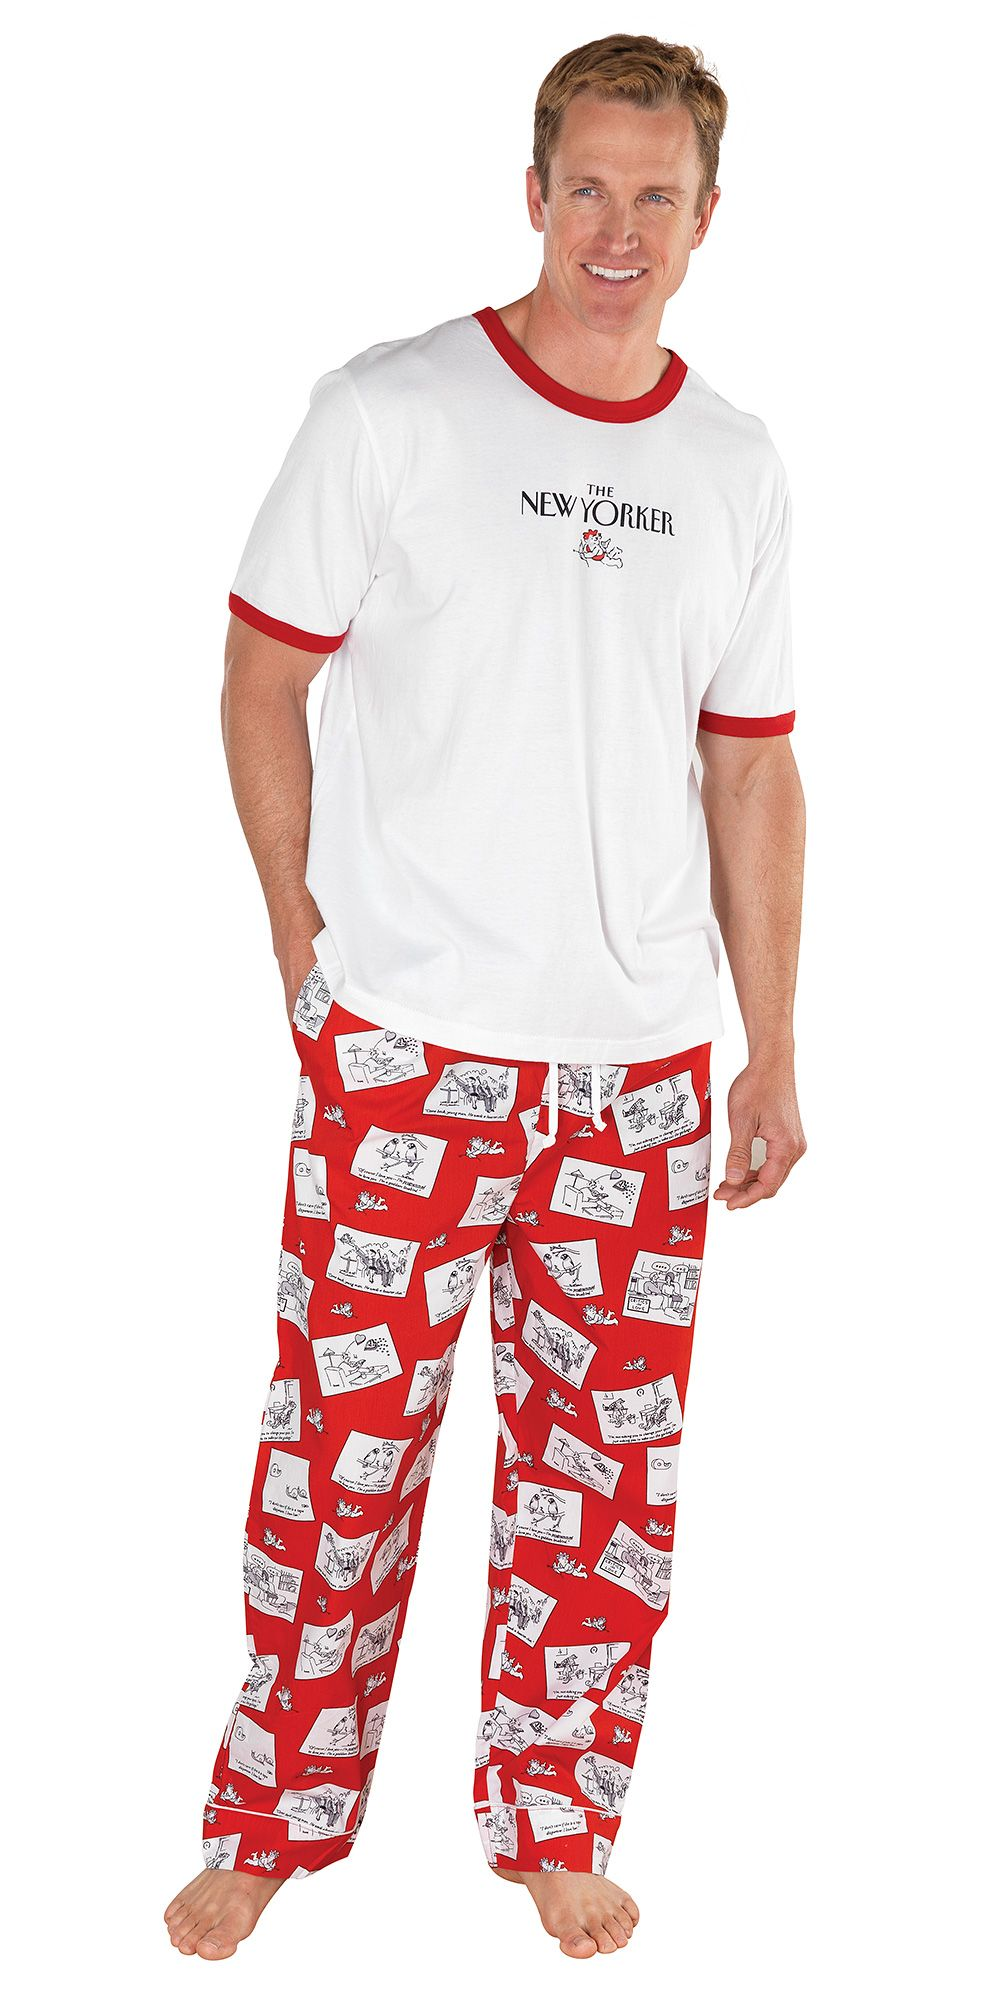 The New Yorker® Romance Cartoon Pajamas for Men from PajamaGram.  59.99   Pajamas  Men  NewYorker 79e7fbcfe